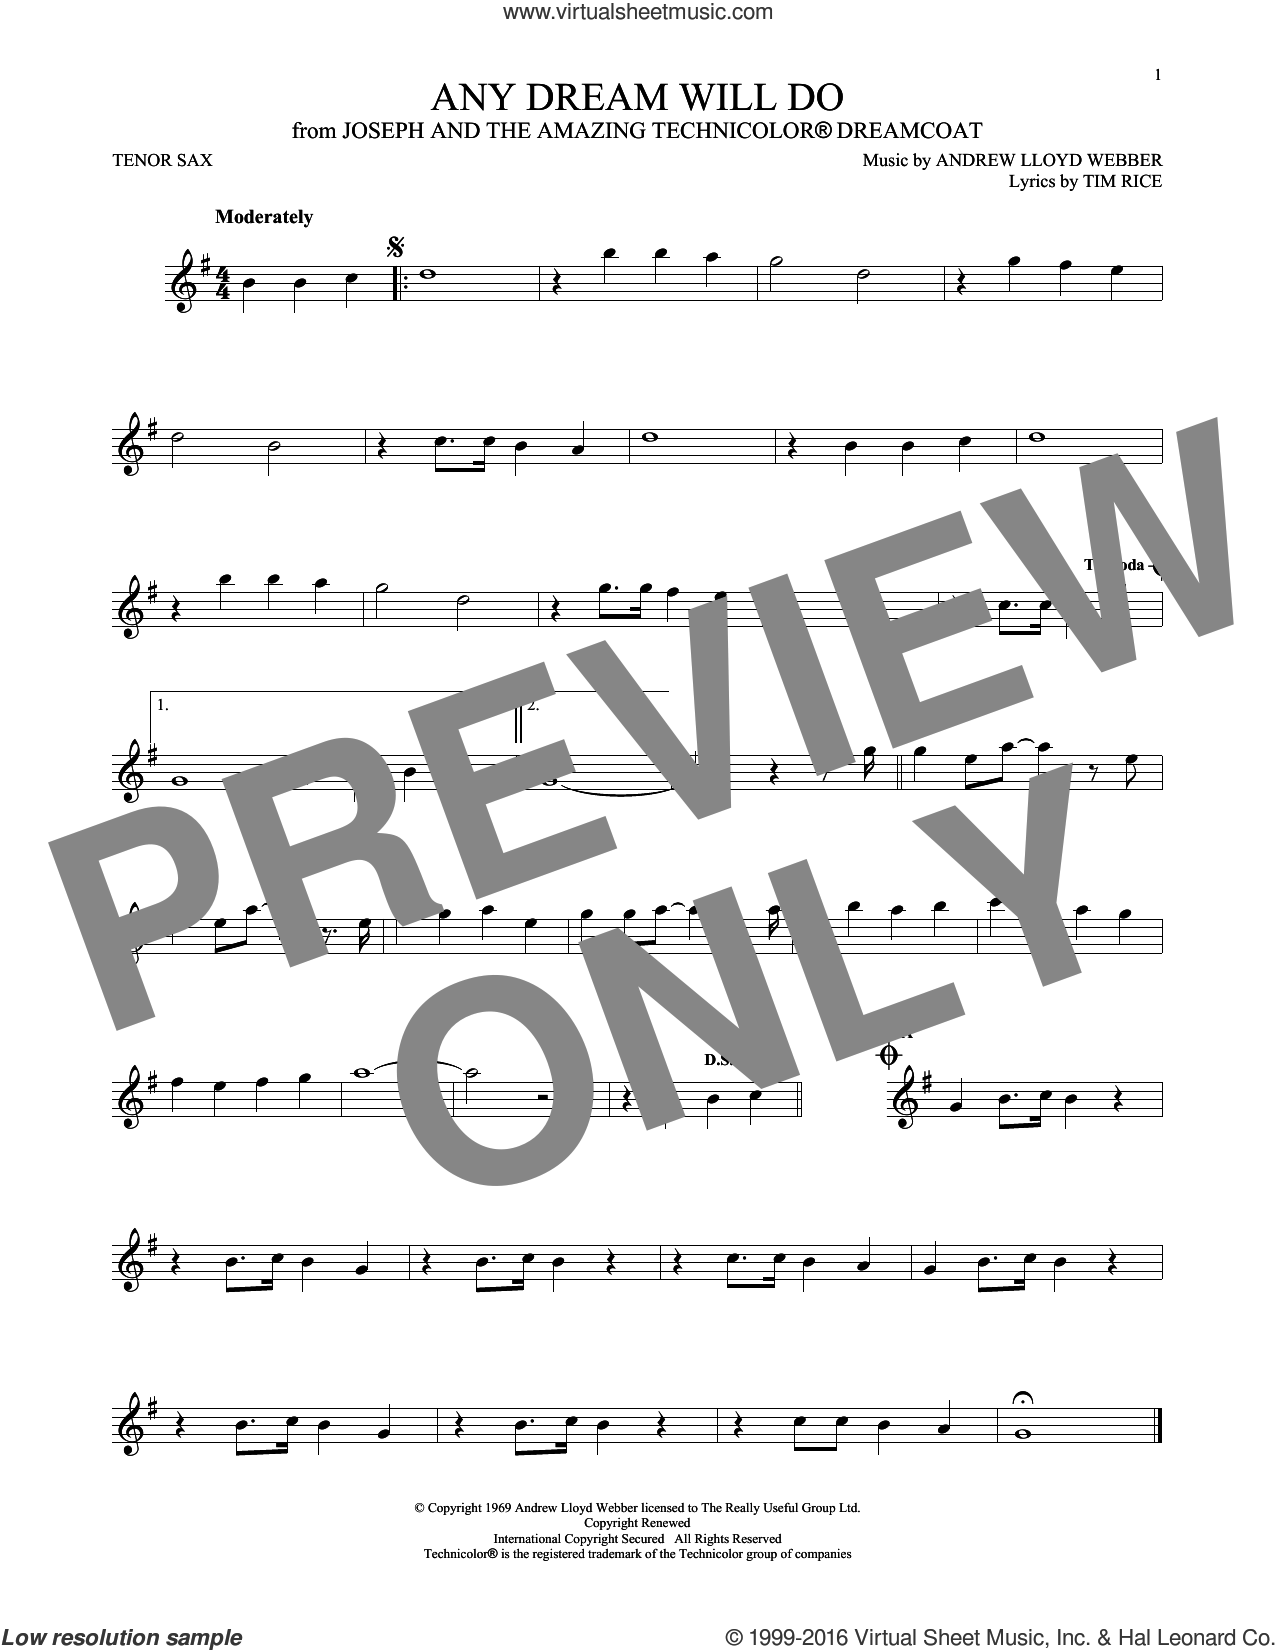 Any Dream Will Do (from Joseph and the Amazing Technicolor Dreamcoat) sheet music for tenor saxophone solo by Andrew Lloyd Webber, Andrew Lloyd Webber & Tim Rice and Tim Rice, intermediate skill level